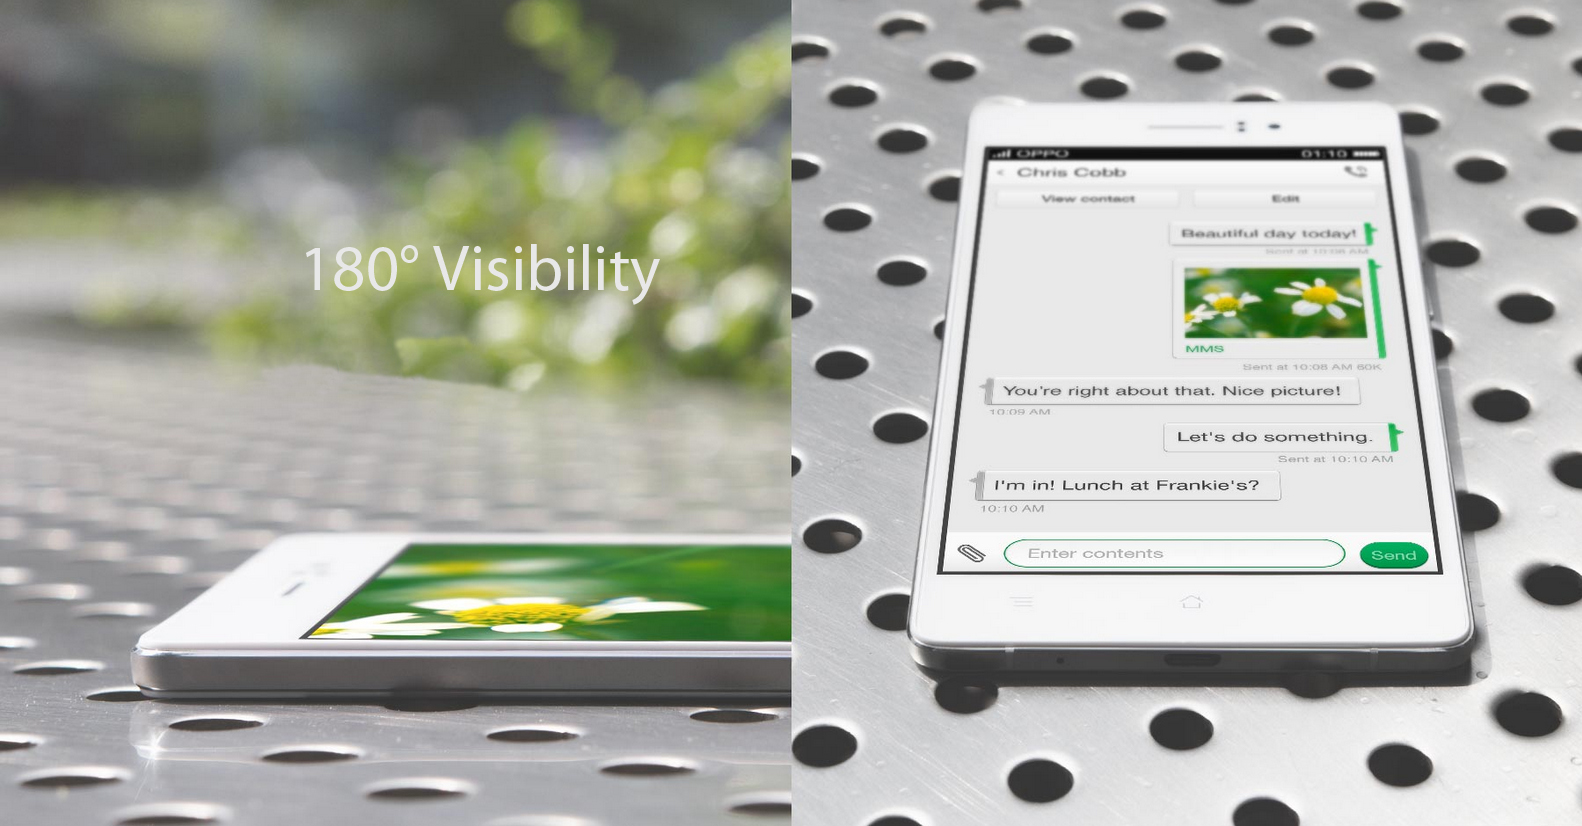 005_Visibility